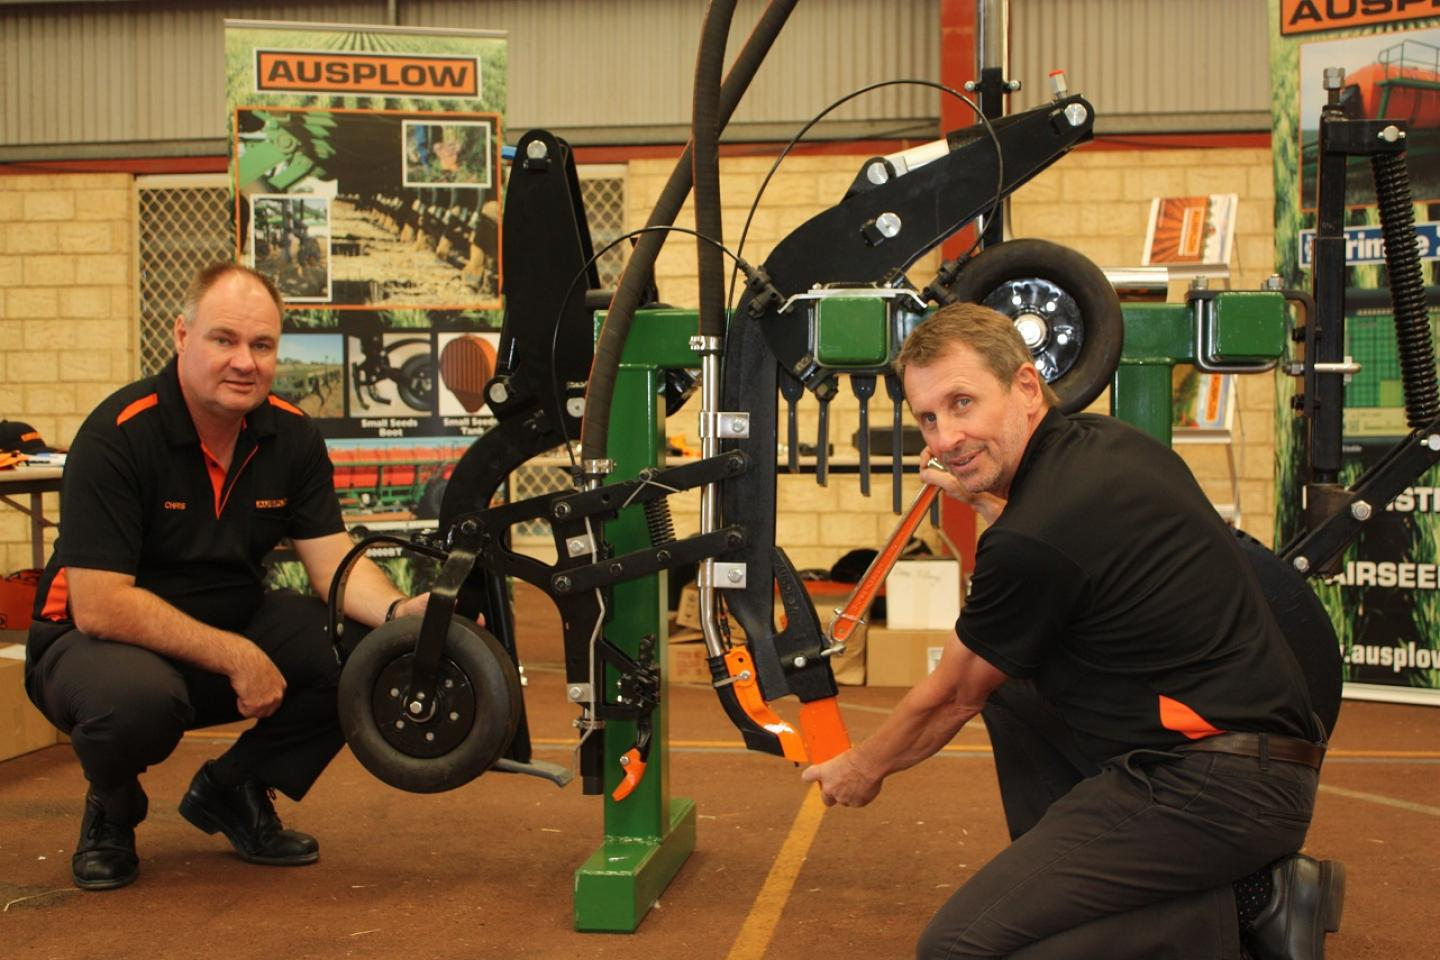 Ausplow general manager Chris Farmer (left) and the company's sales and marketing manager Chris Blight re planning to expand Ausplow's market in the Eastern States.